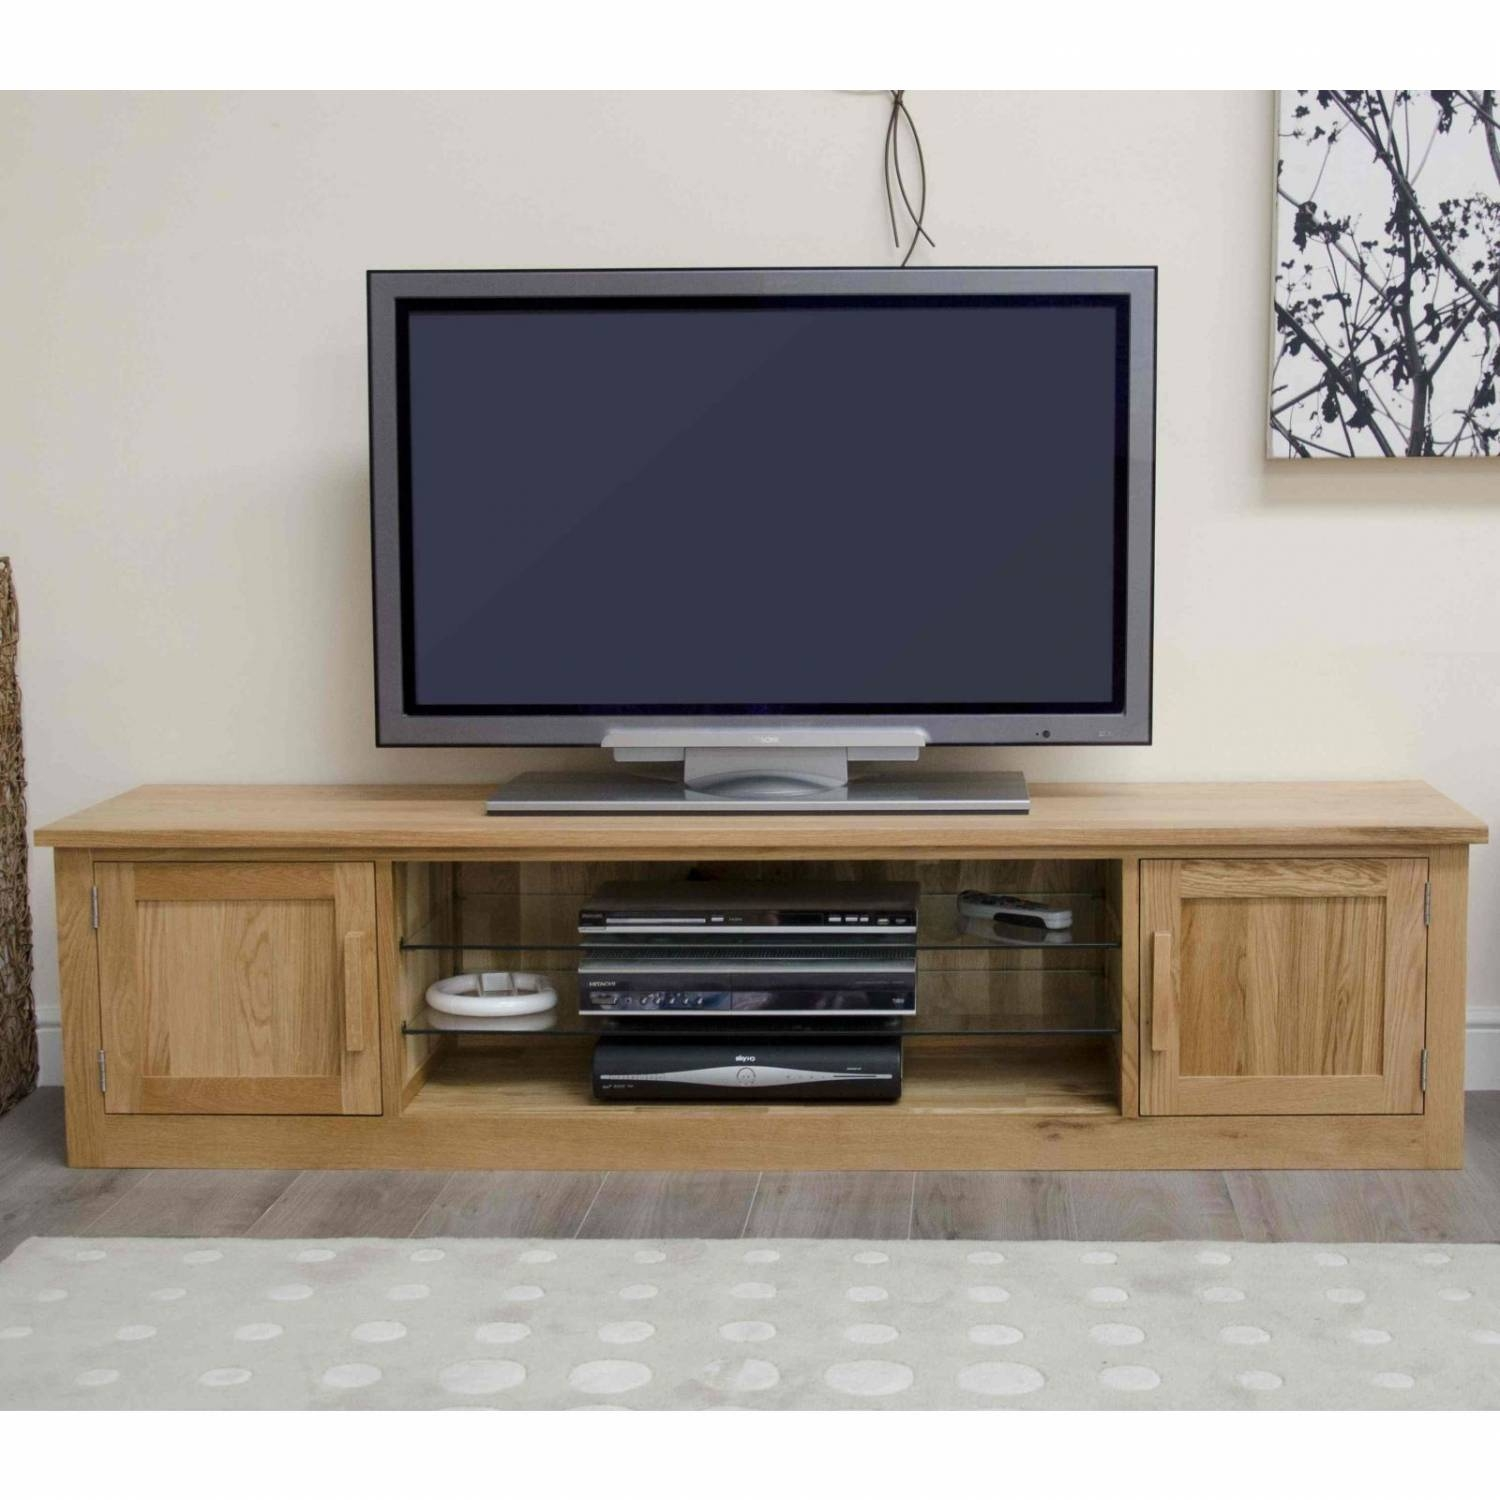 Arden Solid Oak Living Room Furniture Large Widescreen Tv Cabinet throughout Wide Screen Tv Stands (Image 2 of 15)